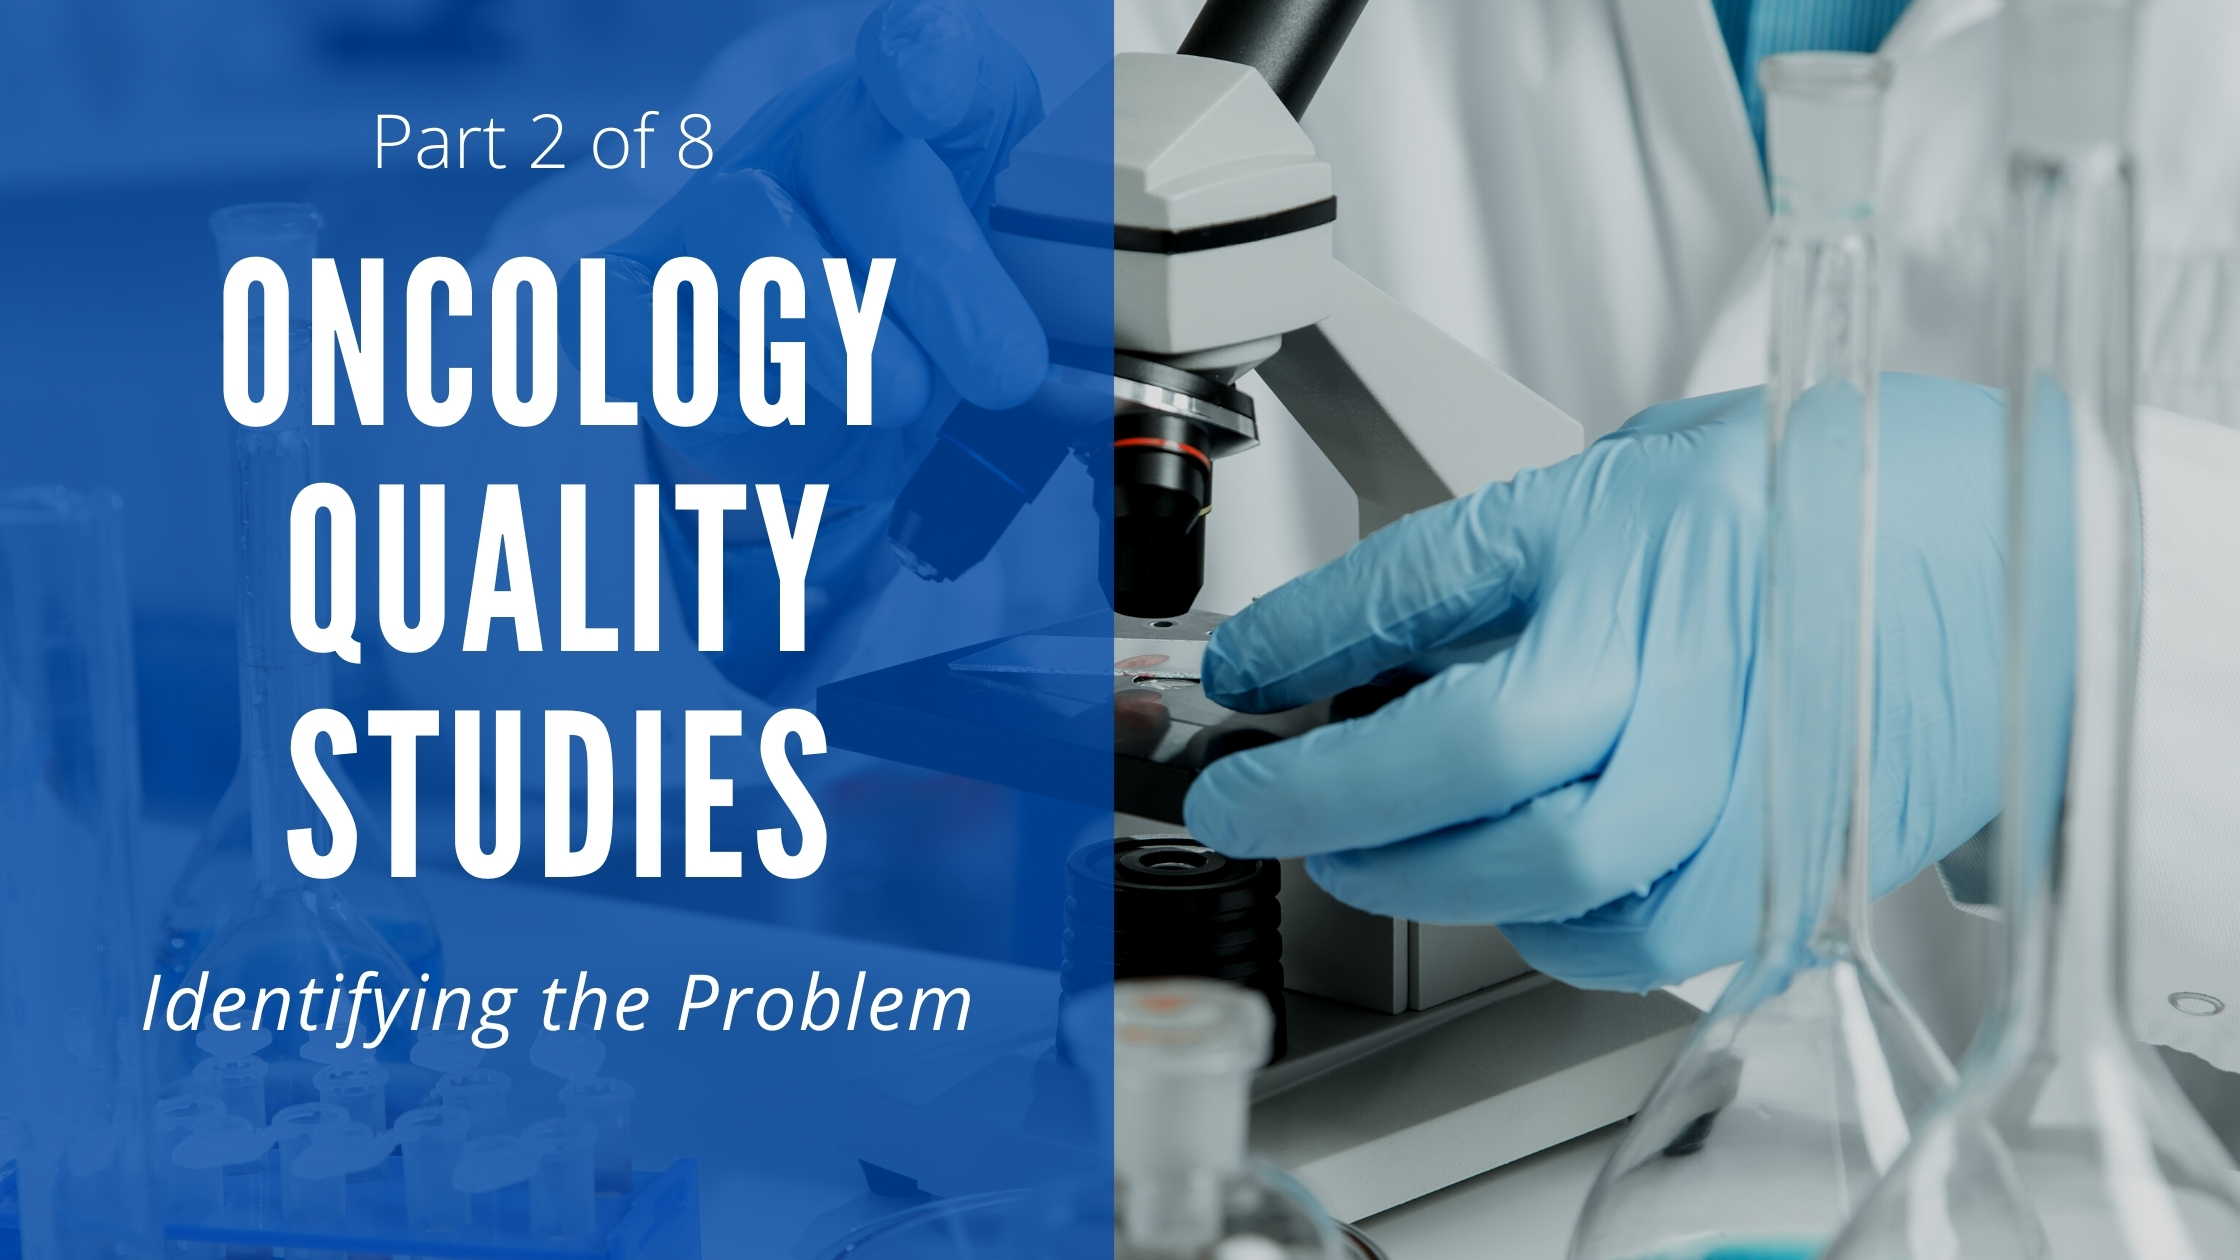 Oncology Quality Studies: Identifying the Problem